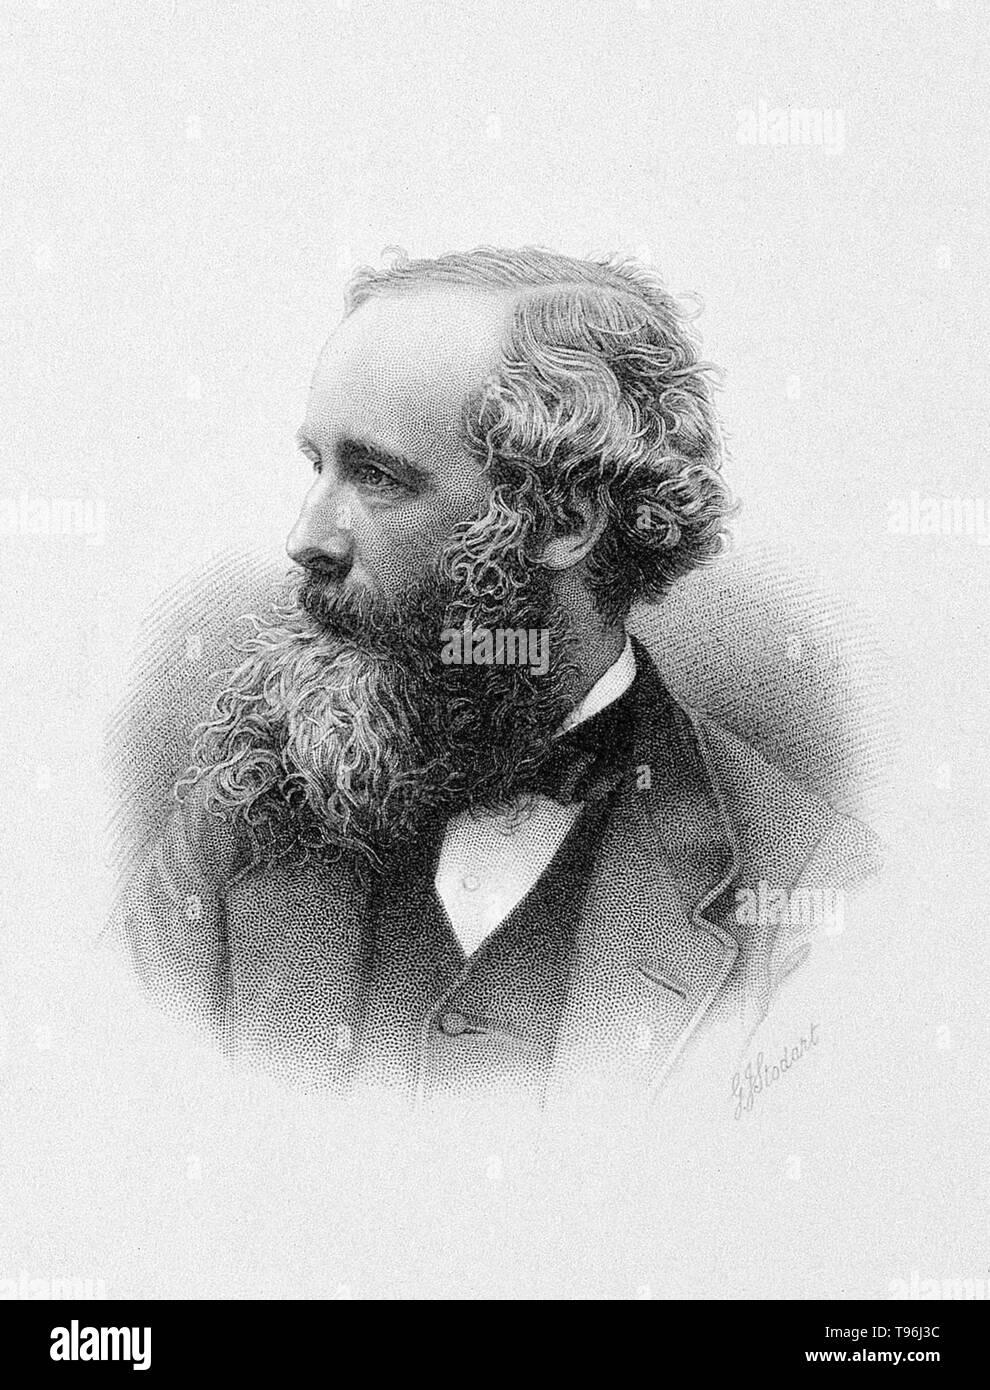 James Clerk Maxwell (1831-1879), Scottish physicist whose major work was on light and electromagnetic waves. He showed that oscillating charges produced waves in an electromagnetic field, and that these waves had the same velocity as light. This led him to predict other forms of electromagnetic radiation, such as radio waves. His equations introduced the value c for the speed of light. He also worked on the motions of molecules in a gas, and showed that Saturn's rings must be composed of numerous particles. - Stock Image